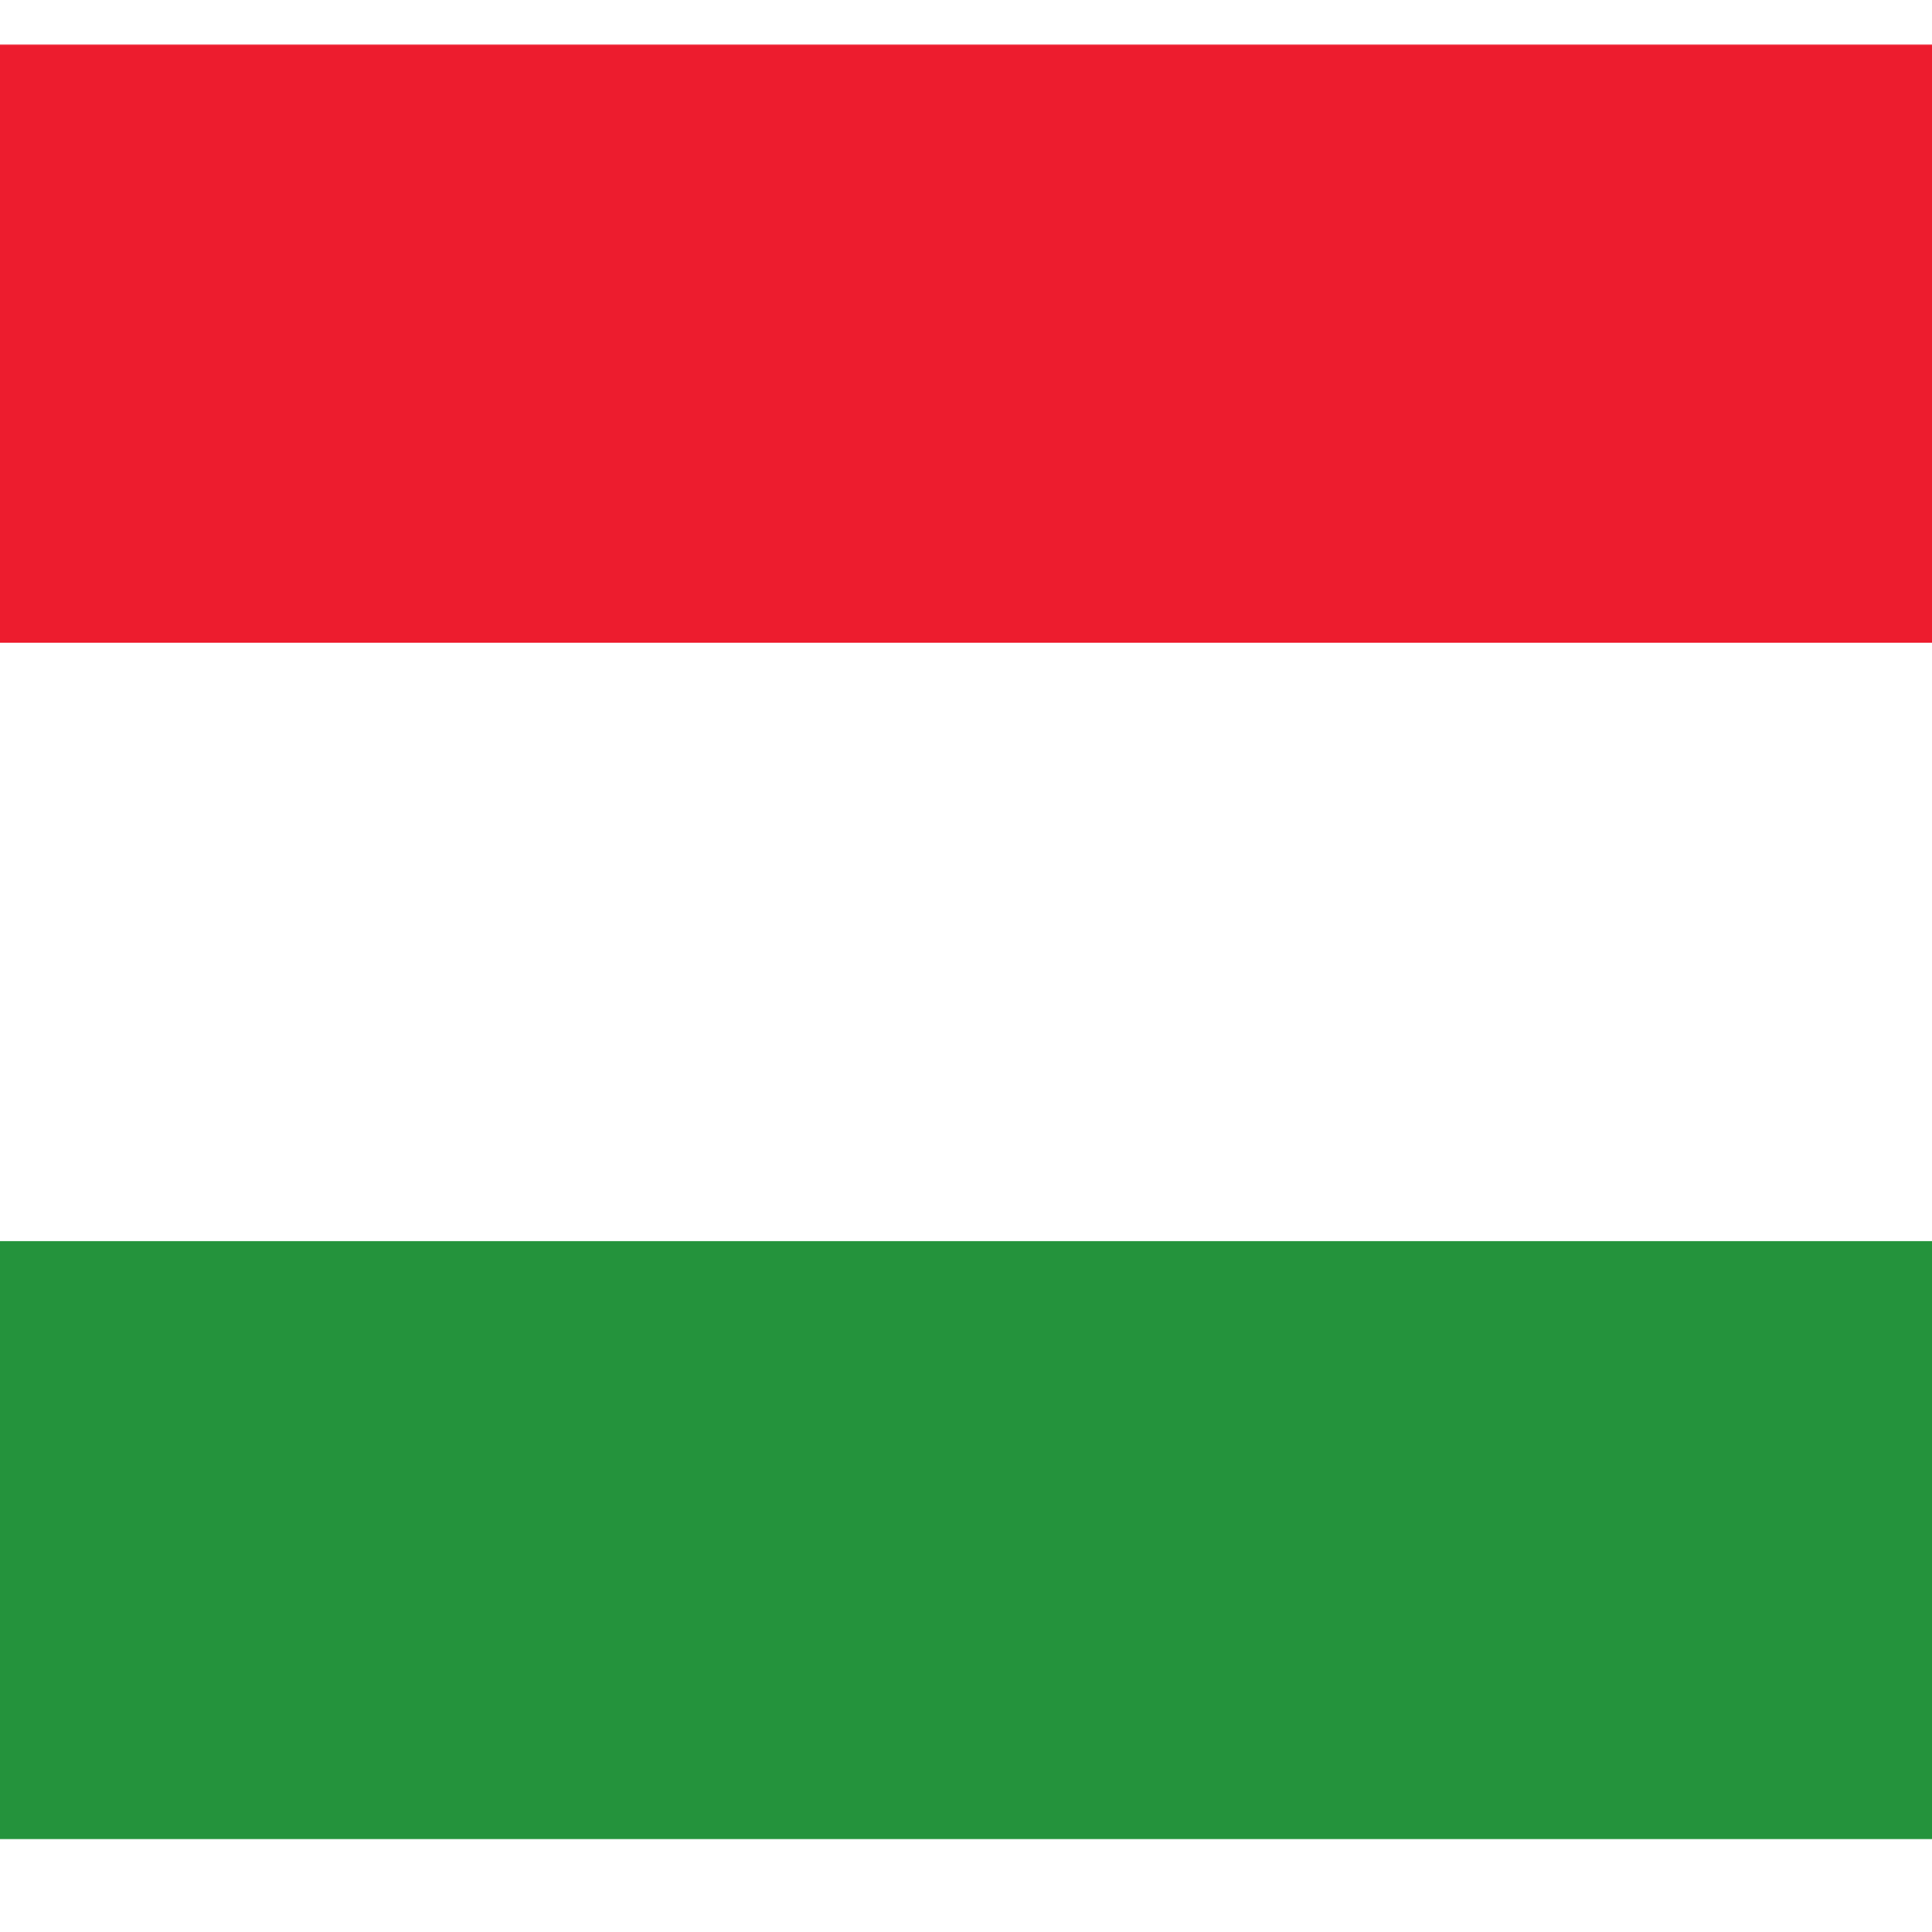 Hungary clipart #4, Download drawings